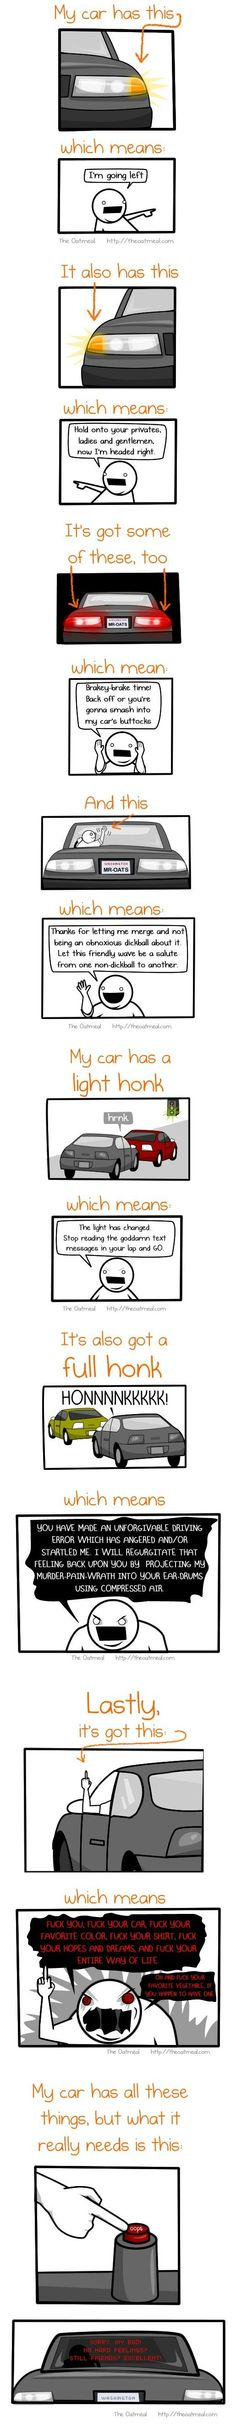 This is definitely how I act when I drive. Don't act like it isn't you.